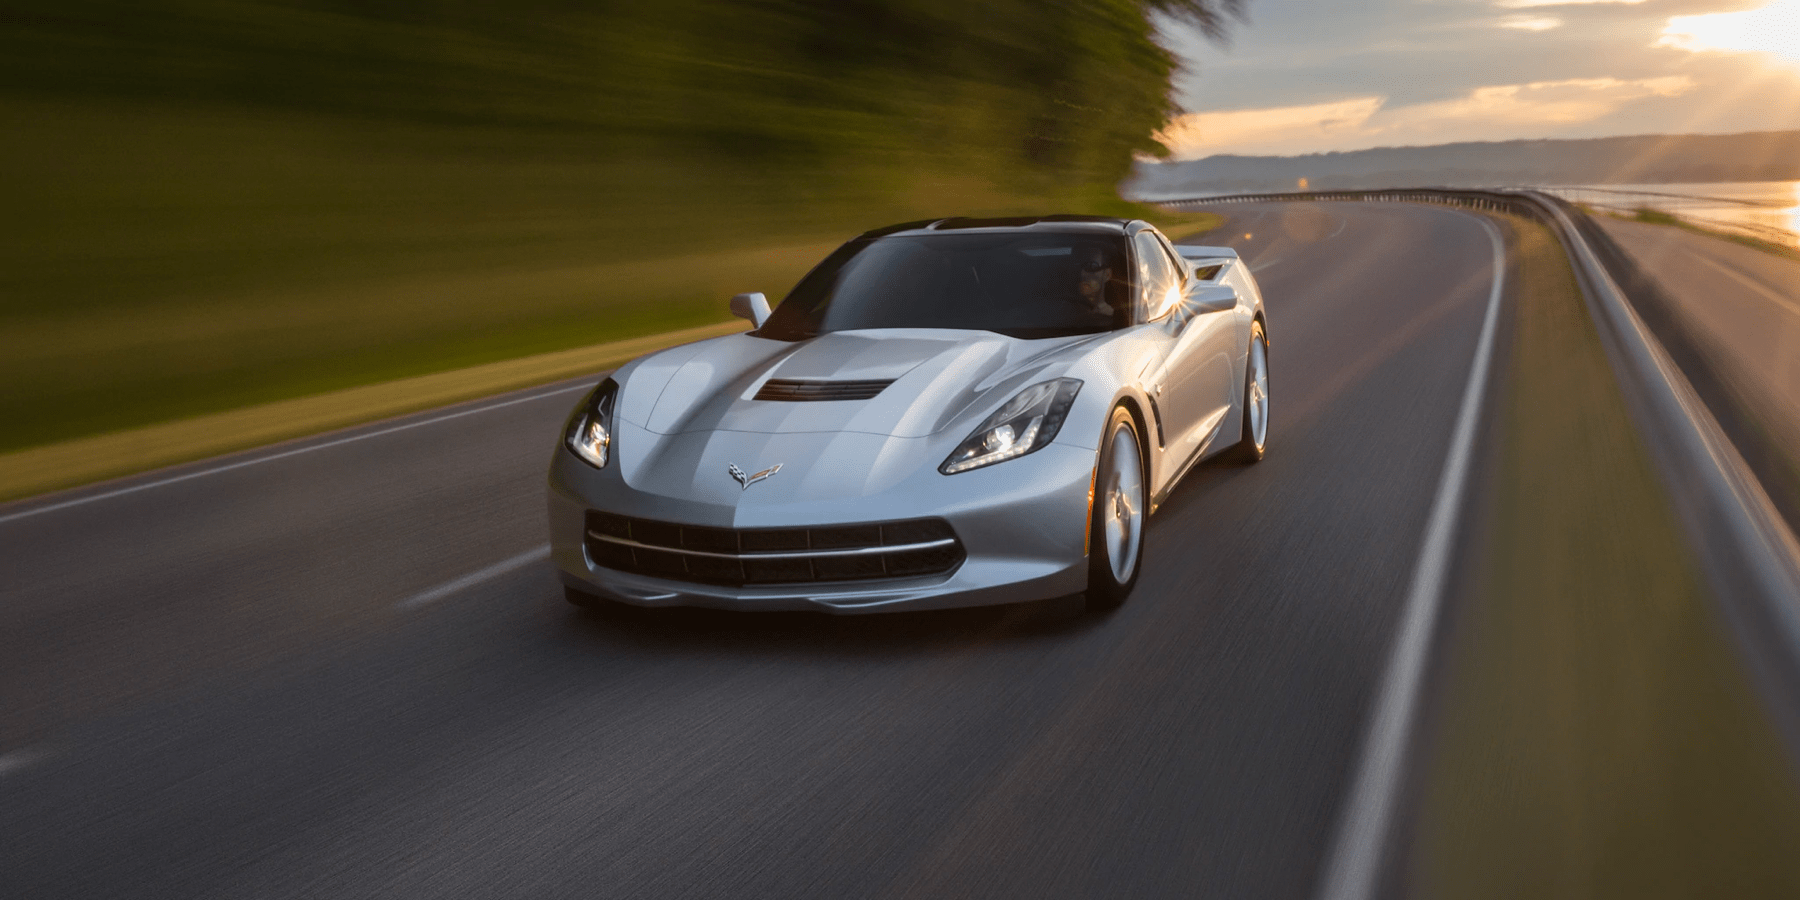 2019 Stingray driving on country highway